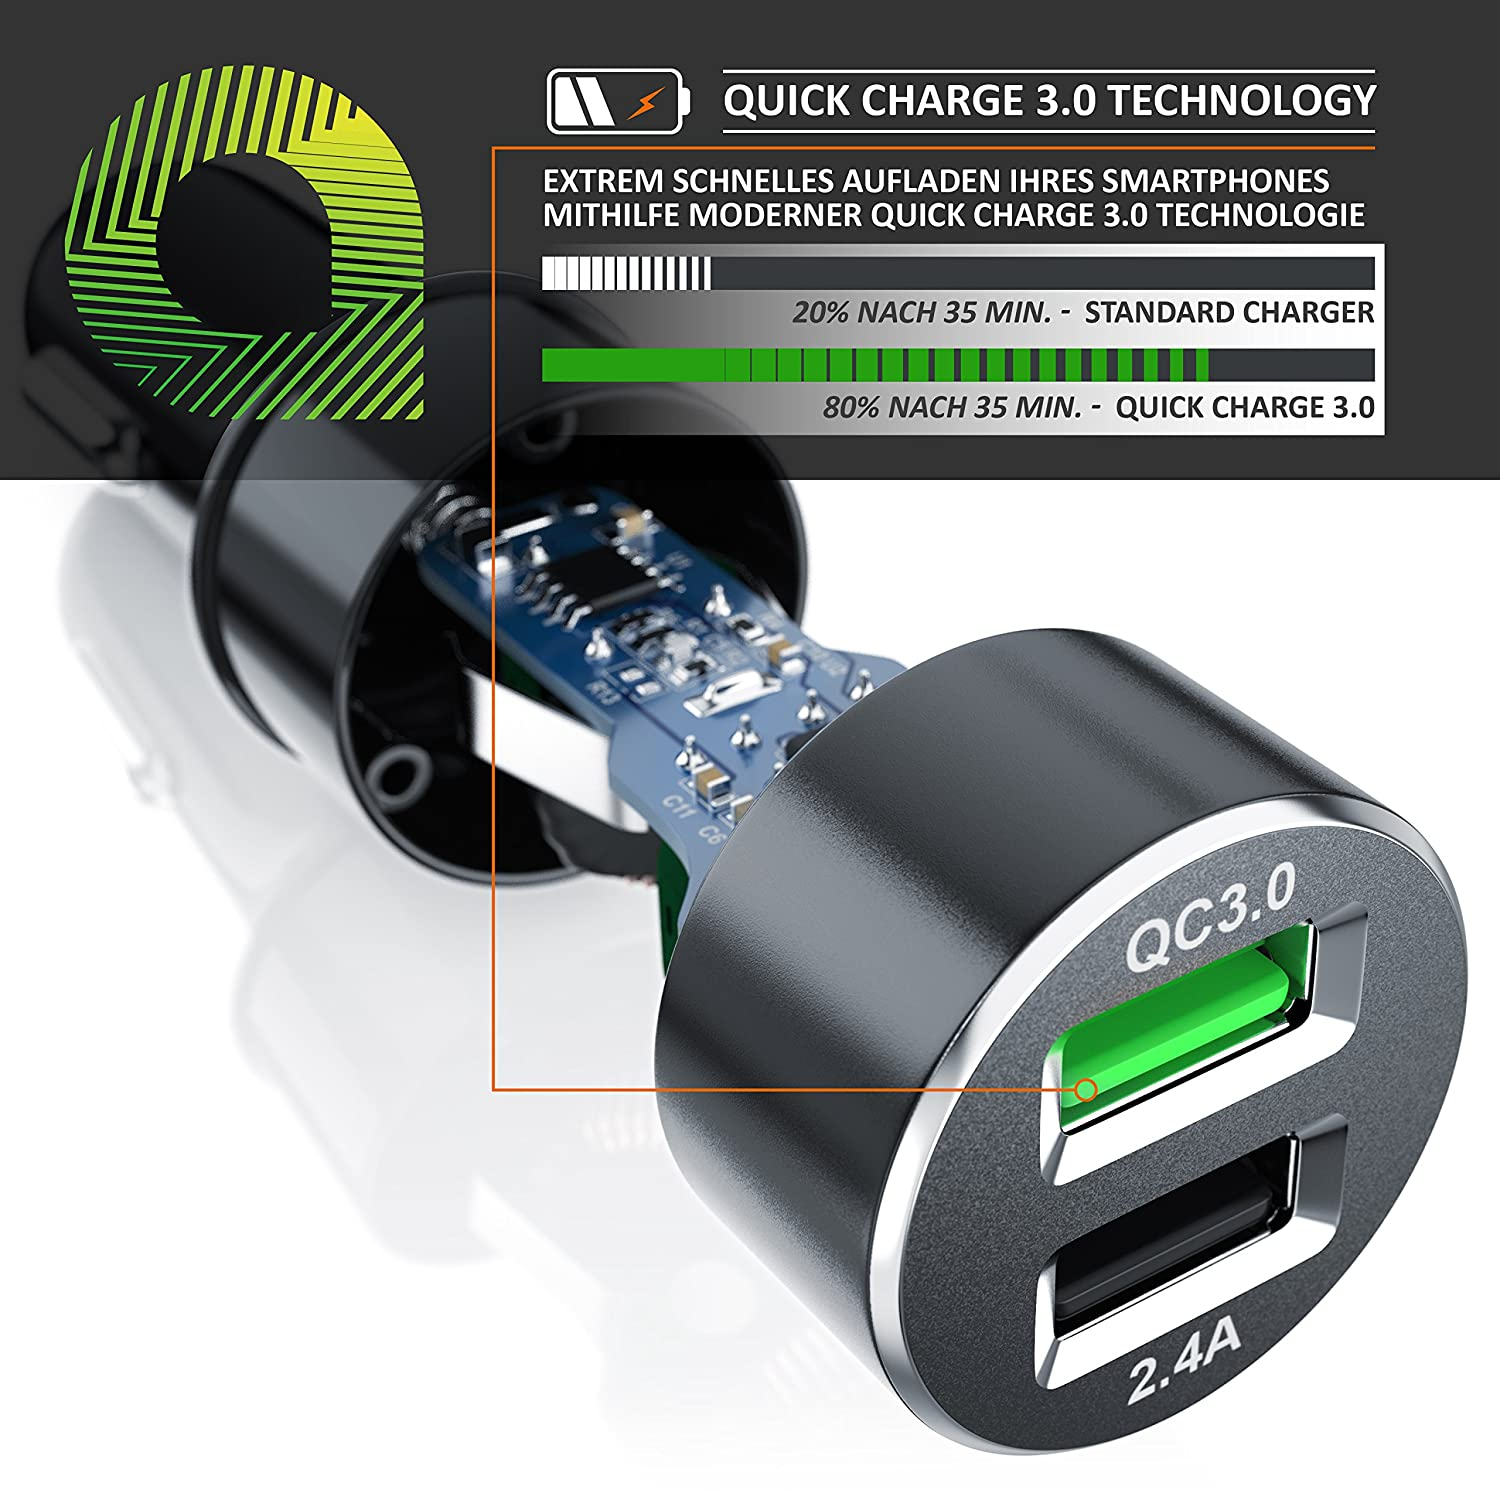 30W Kfz Ladeger/ät 12//24V CSL Auto Schnellladeadapter Zigarettenanz/ünder Car Charger Quick Charge 3.0 Dual Port USB Charger 6000mA High Power